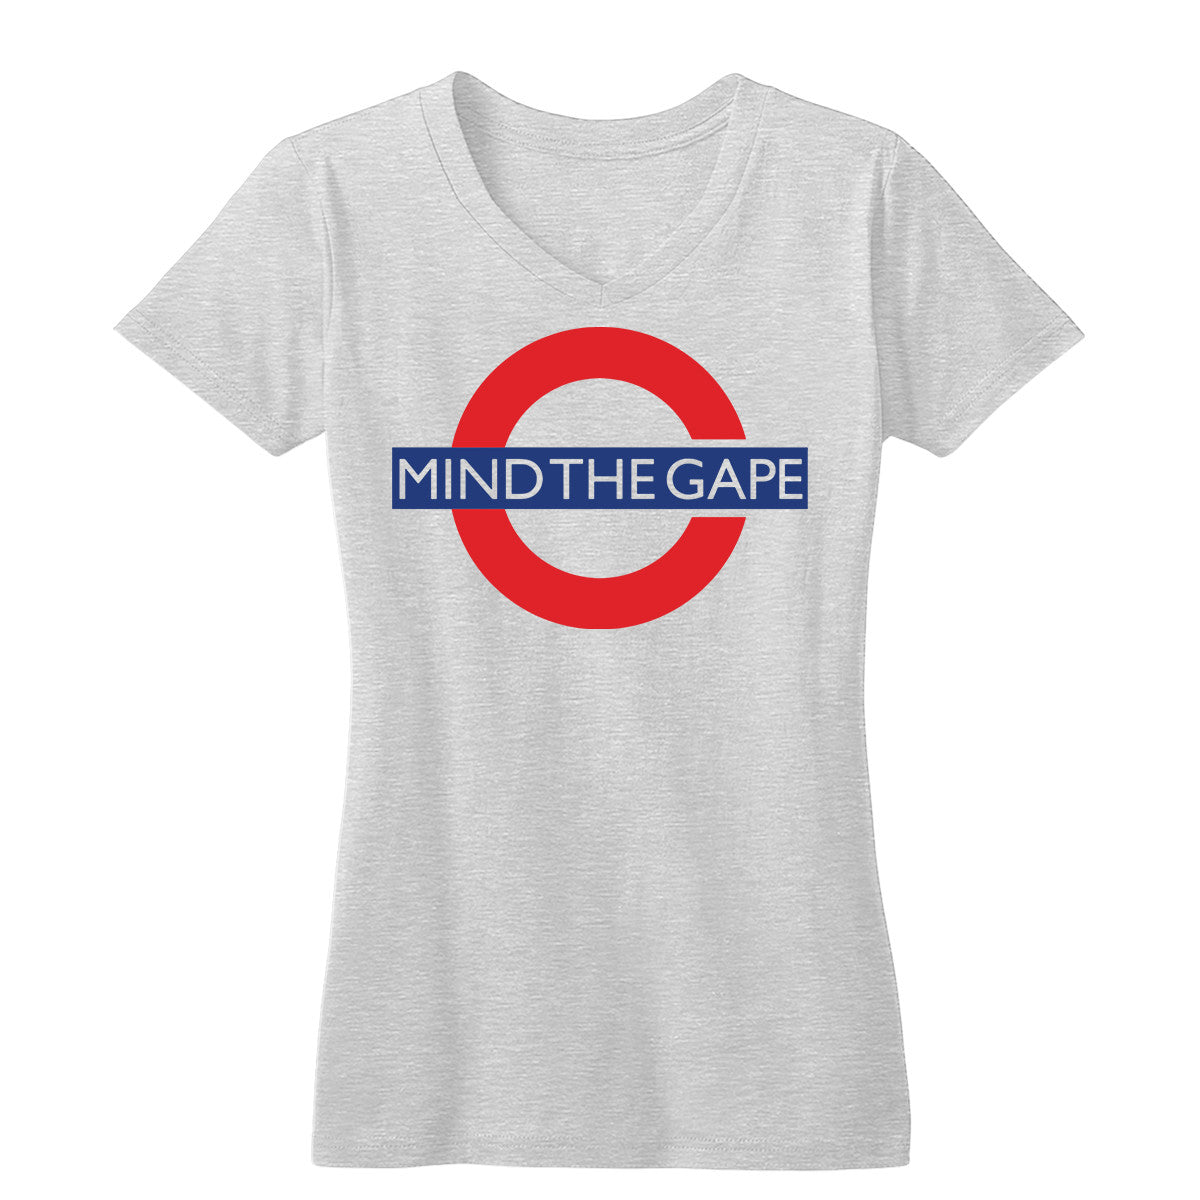 Mind the Gape Women's Tee